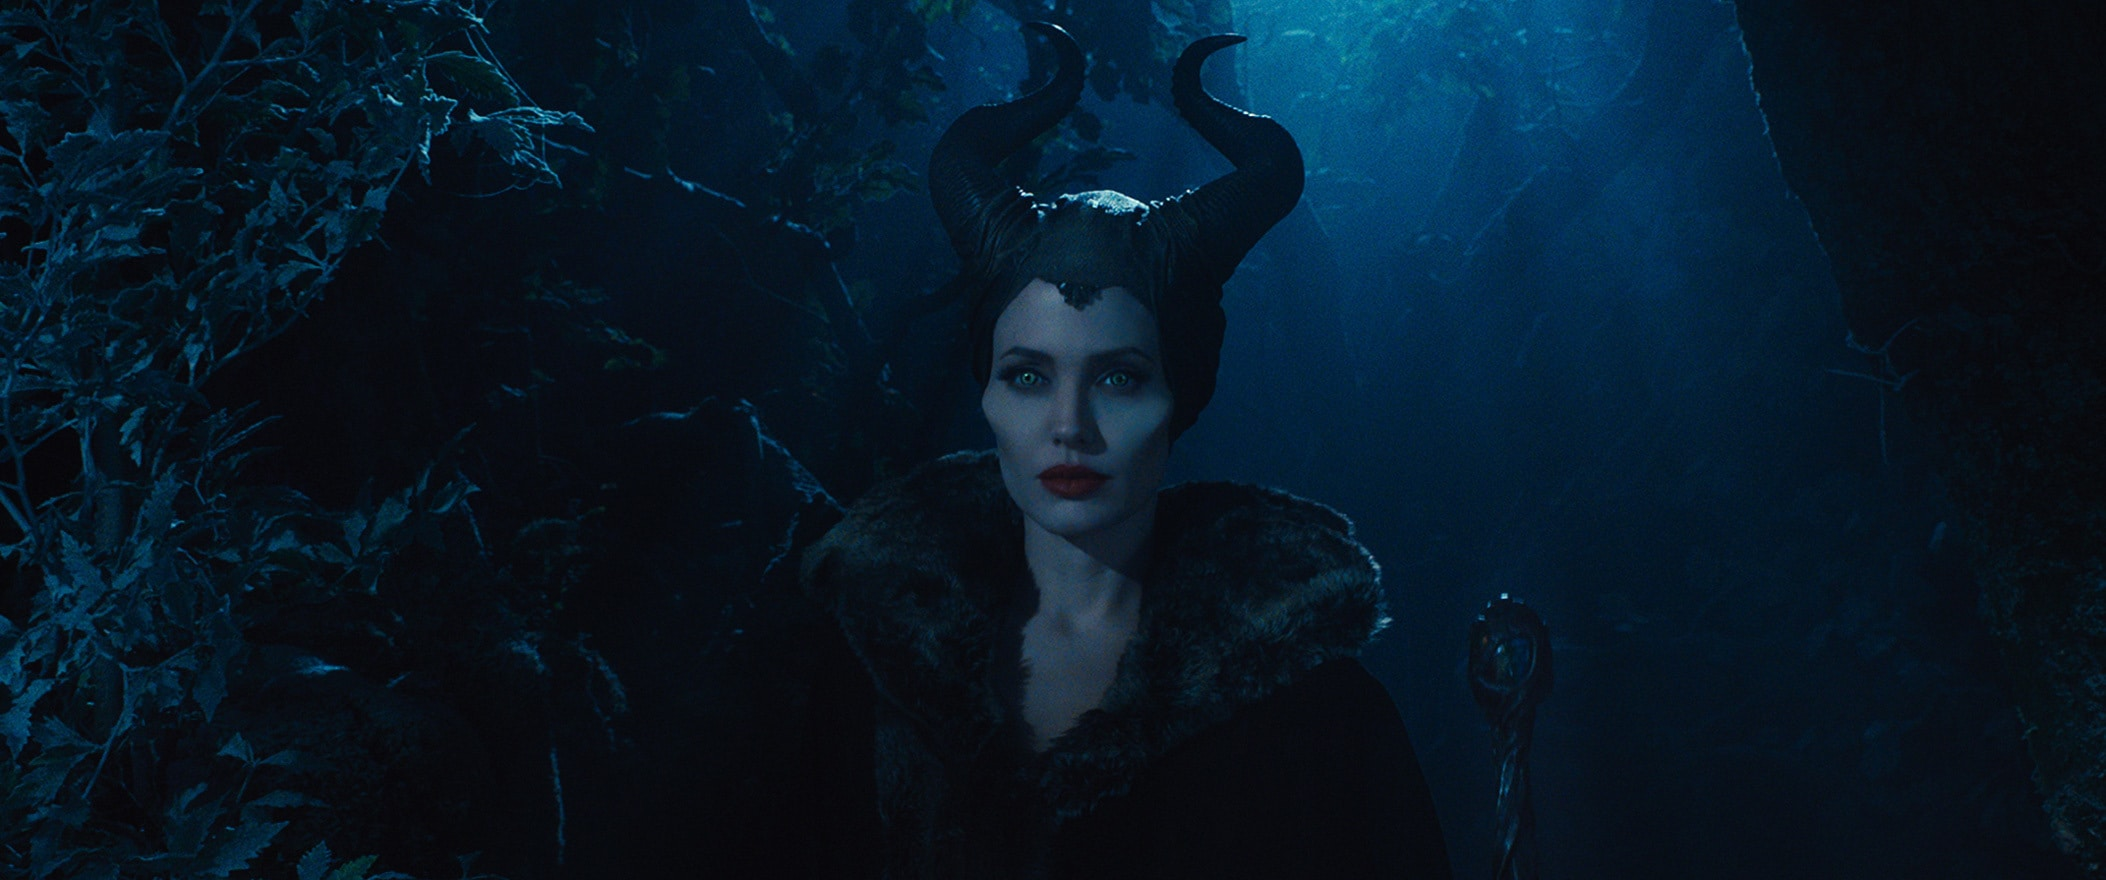 Angelina Jolie as Maleficent in the forest